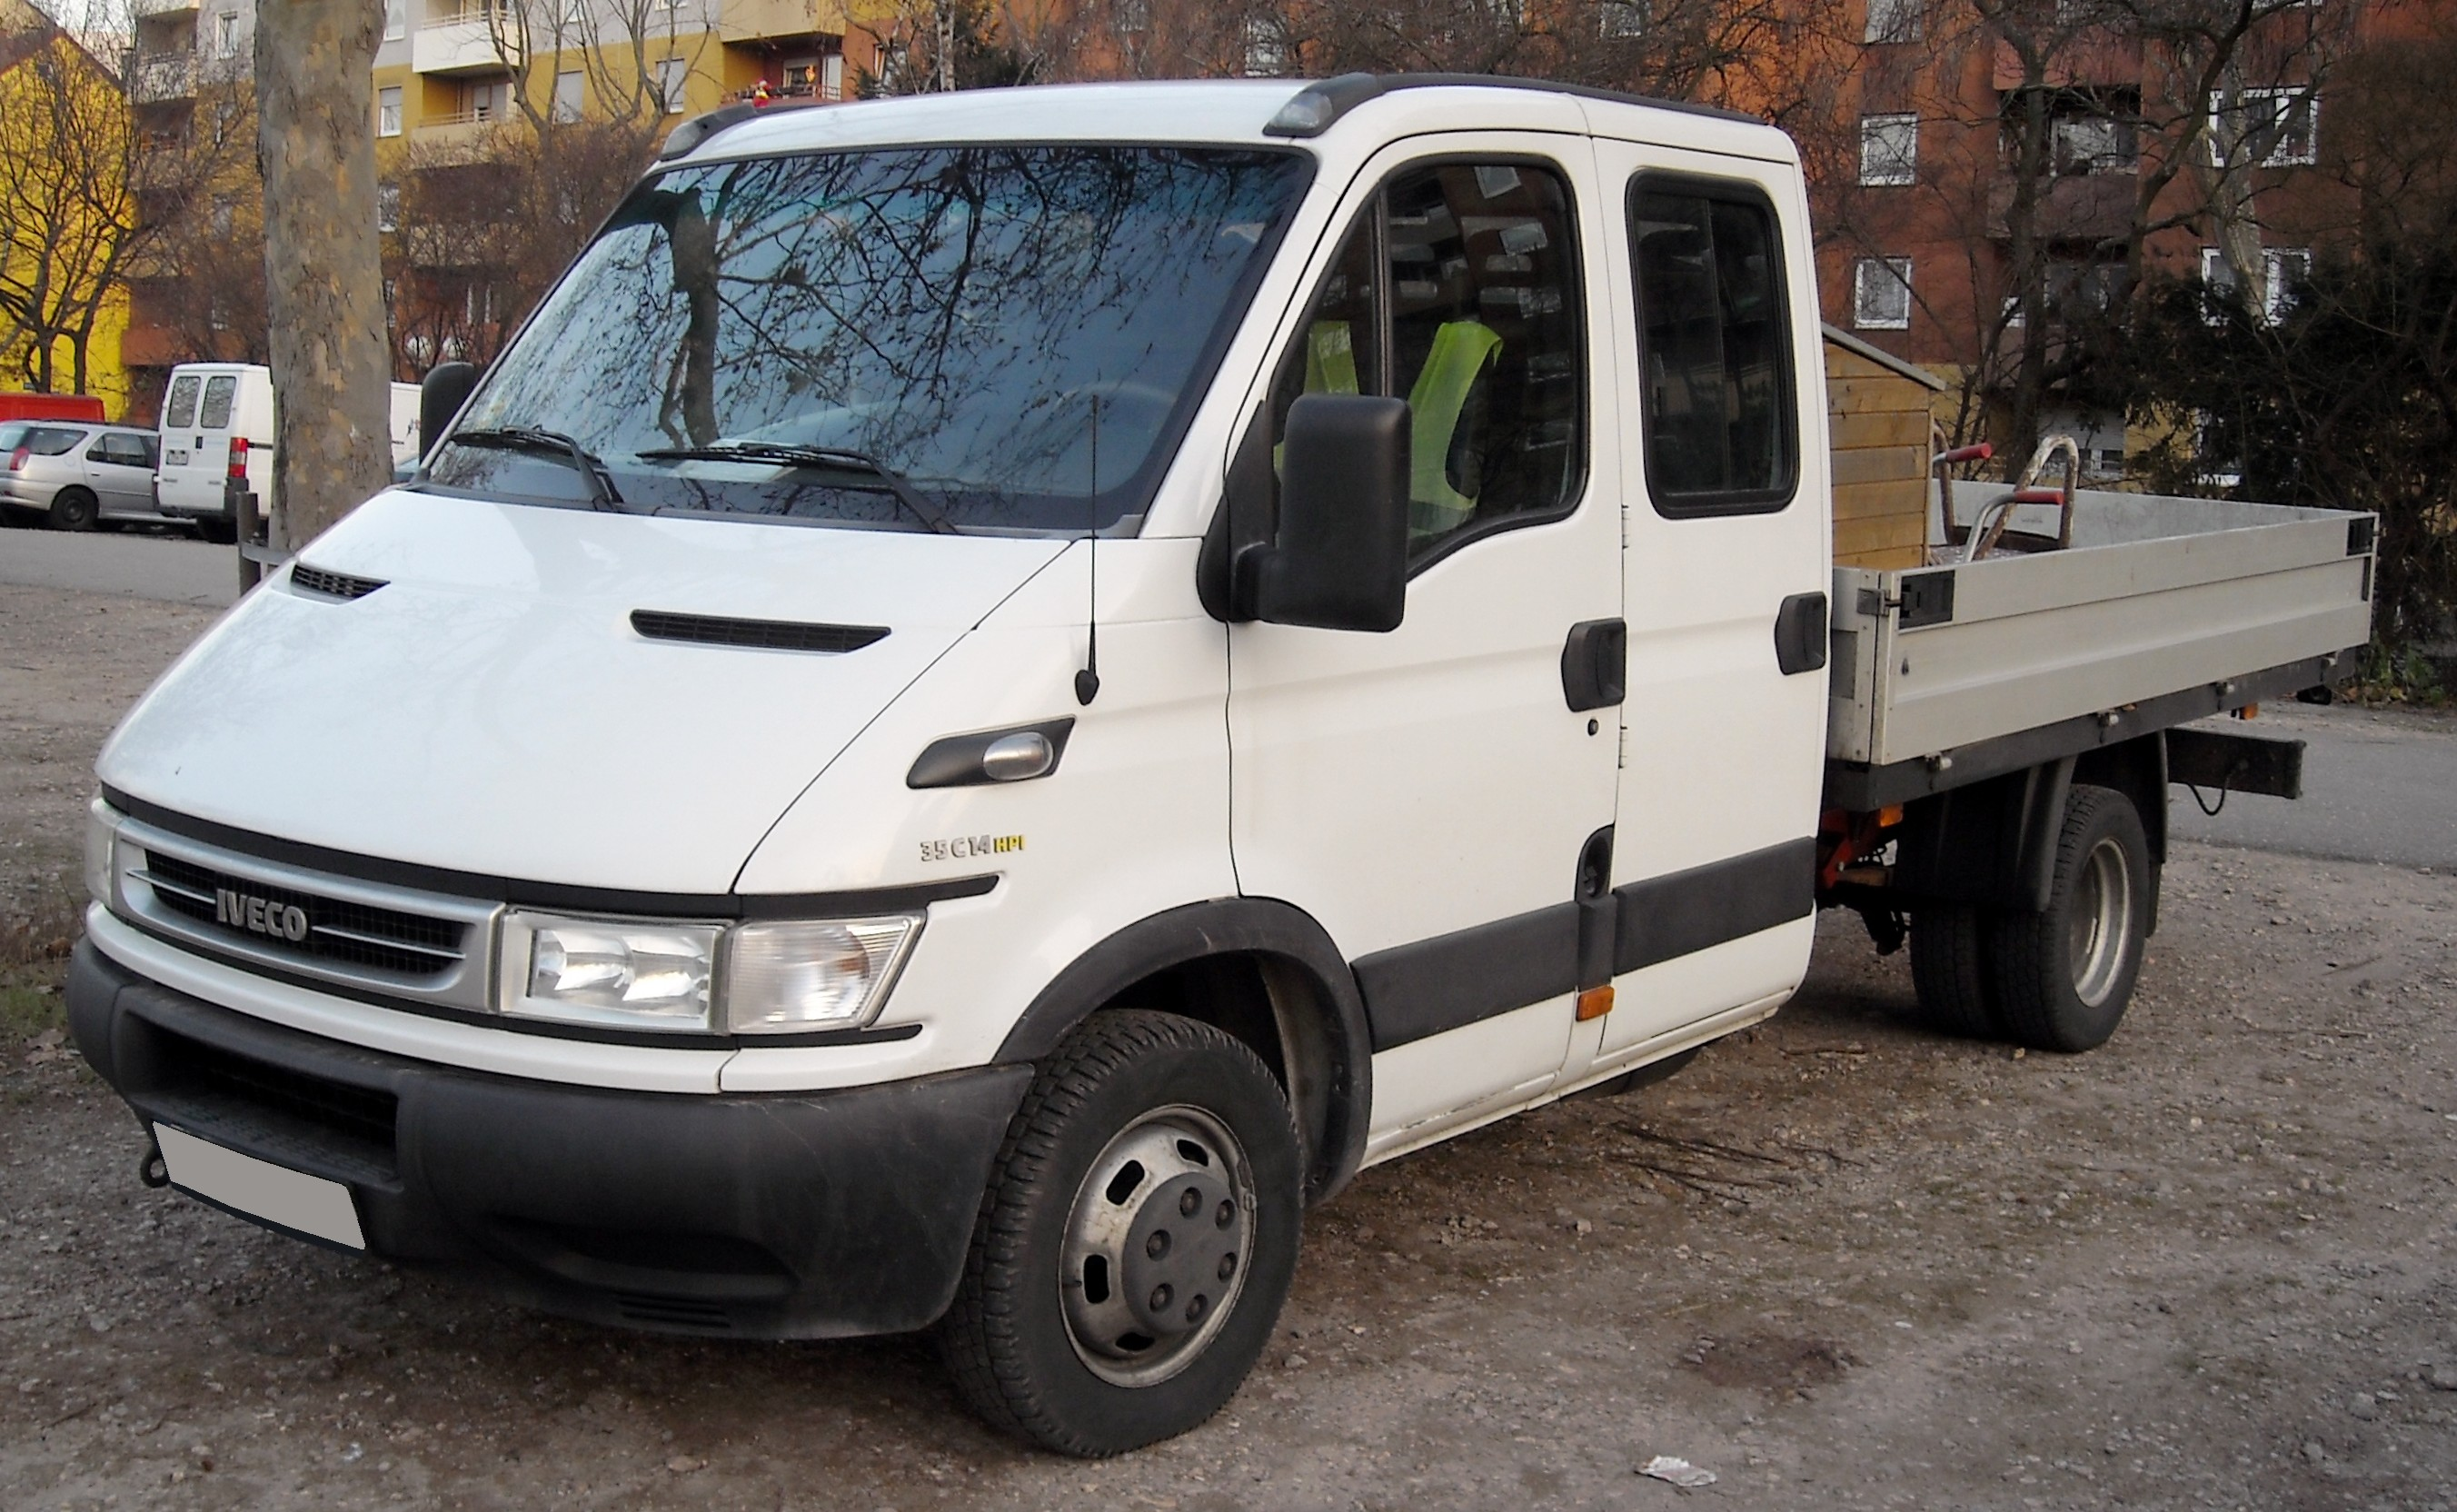 FileIveco Daily III Pritsche front 20081229jpg  Wikipedia